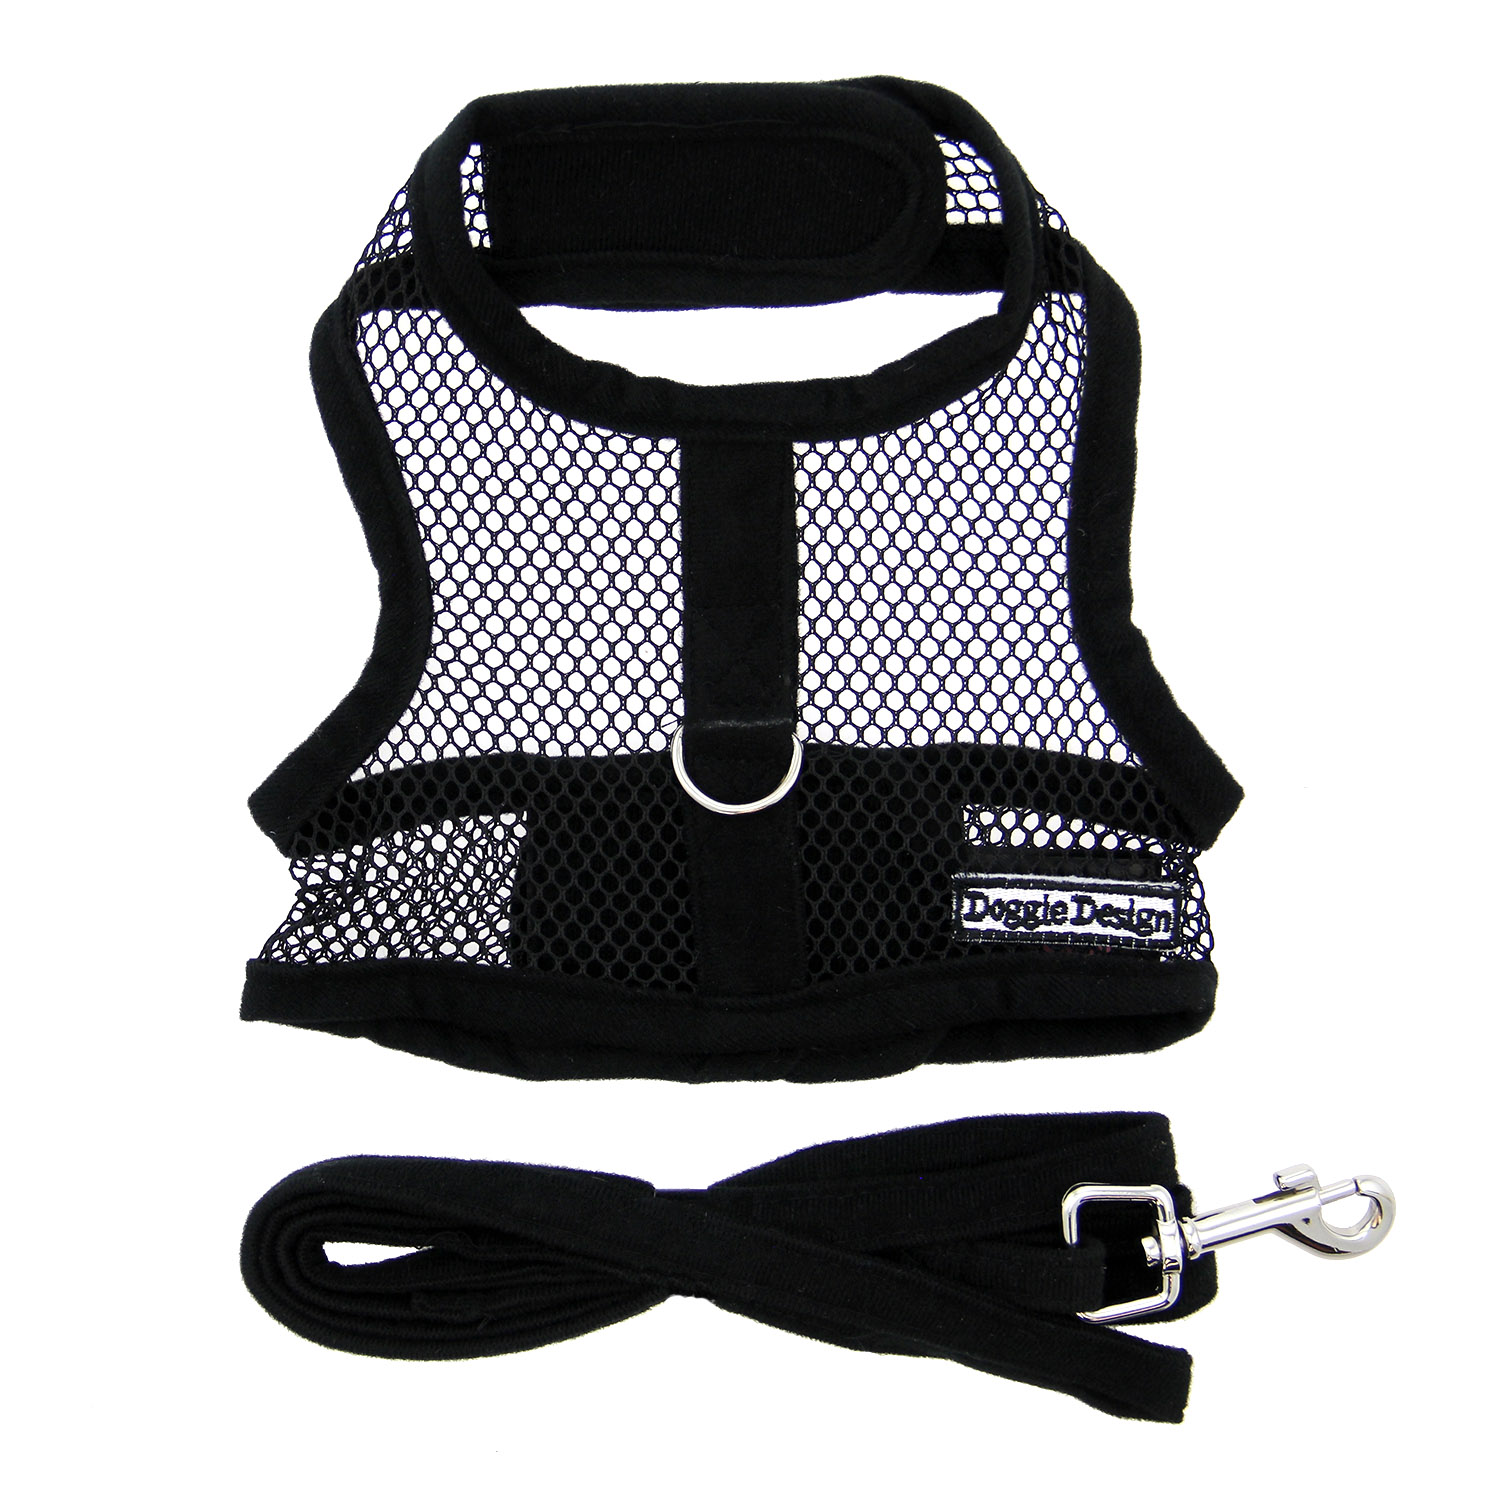 Doggie Design Cool Mesh Dog Harness with Matching Leash, Solid Black, Large